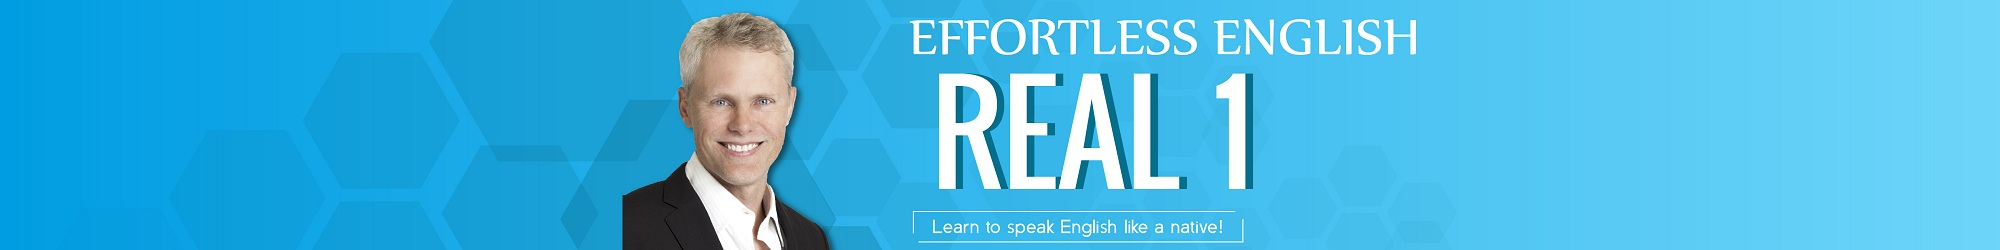 LEARN REAL ENGLISH banner